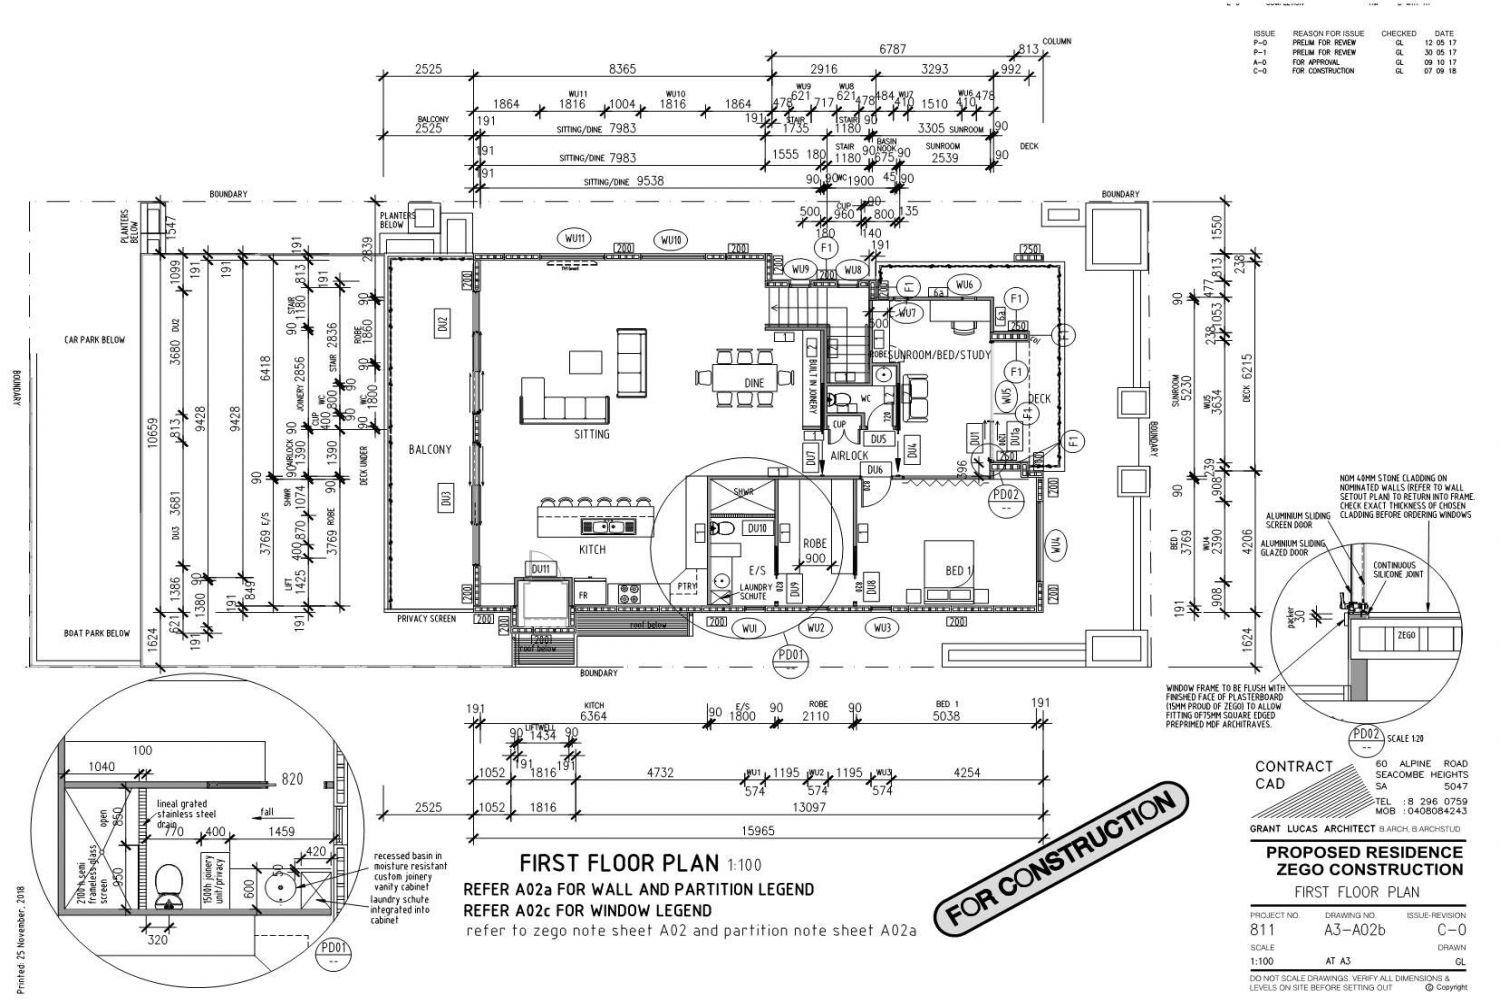 Owner Builder Zego Construction  2 storey Home at Port Noarlunga: Working Drawings Sheet 8  First floor plan